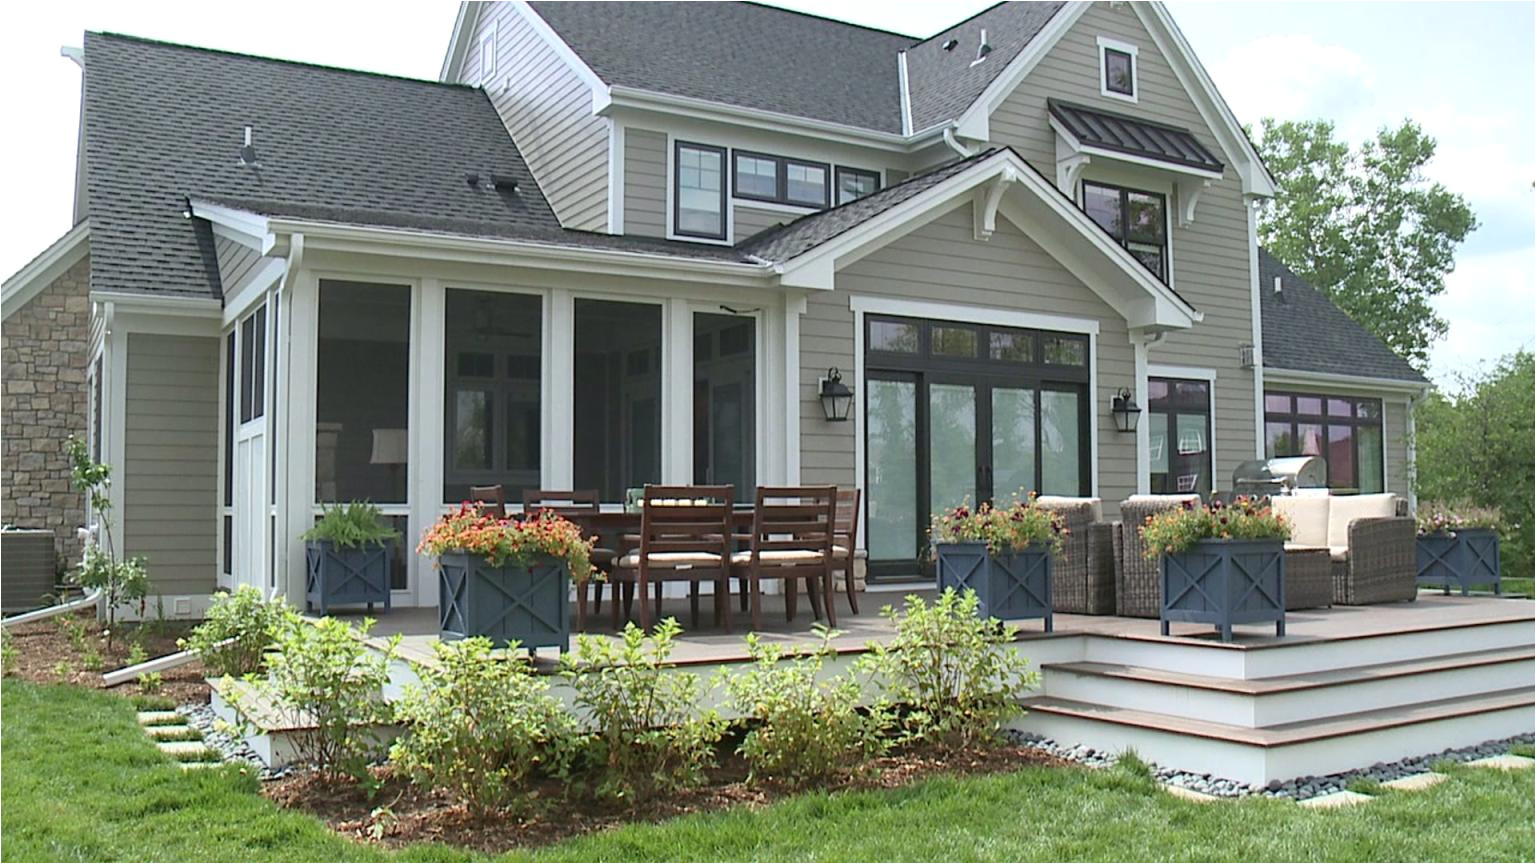 Better Home and Garden House Plans the Keys Of Farm Style House Plans south Africa that We